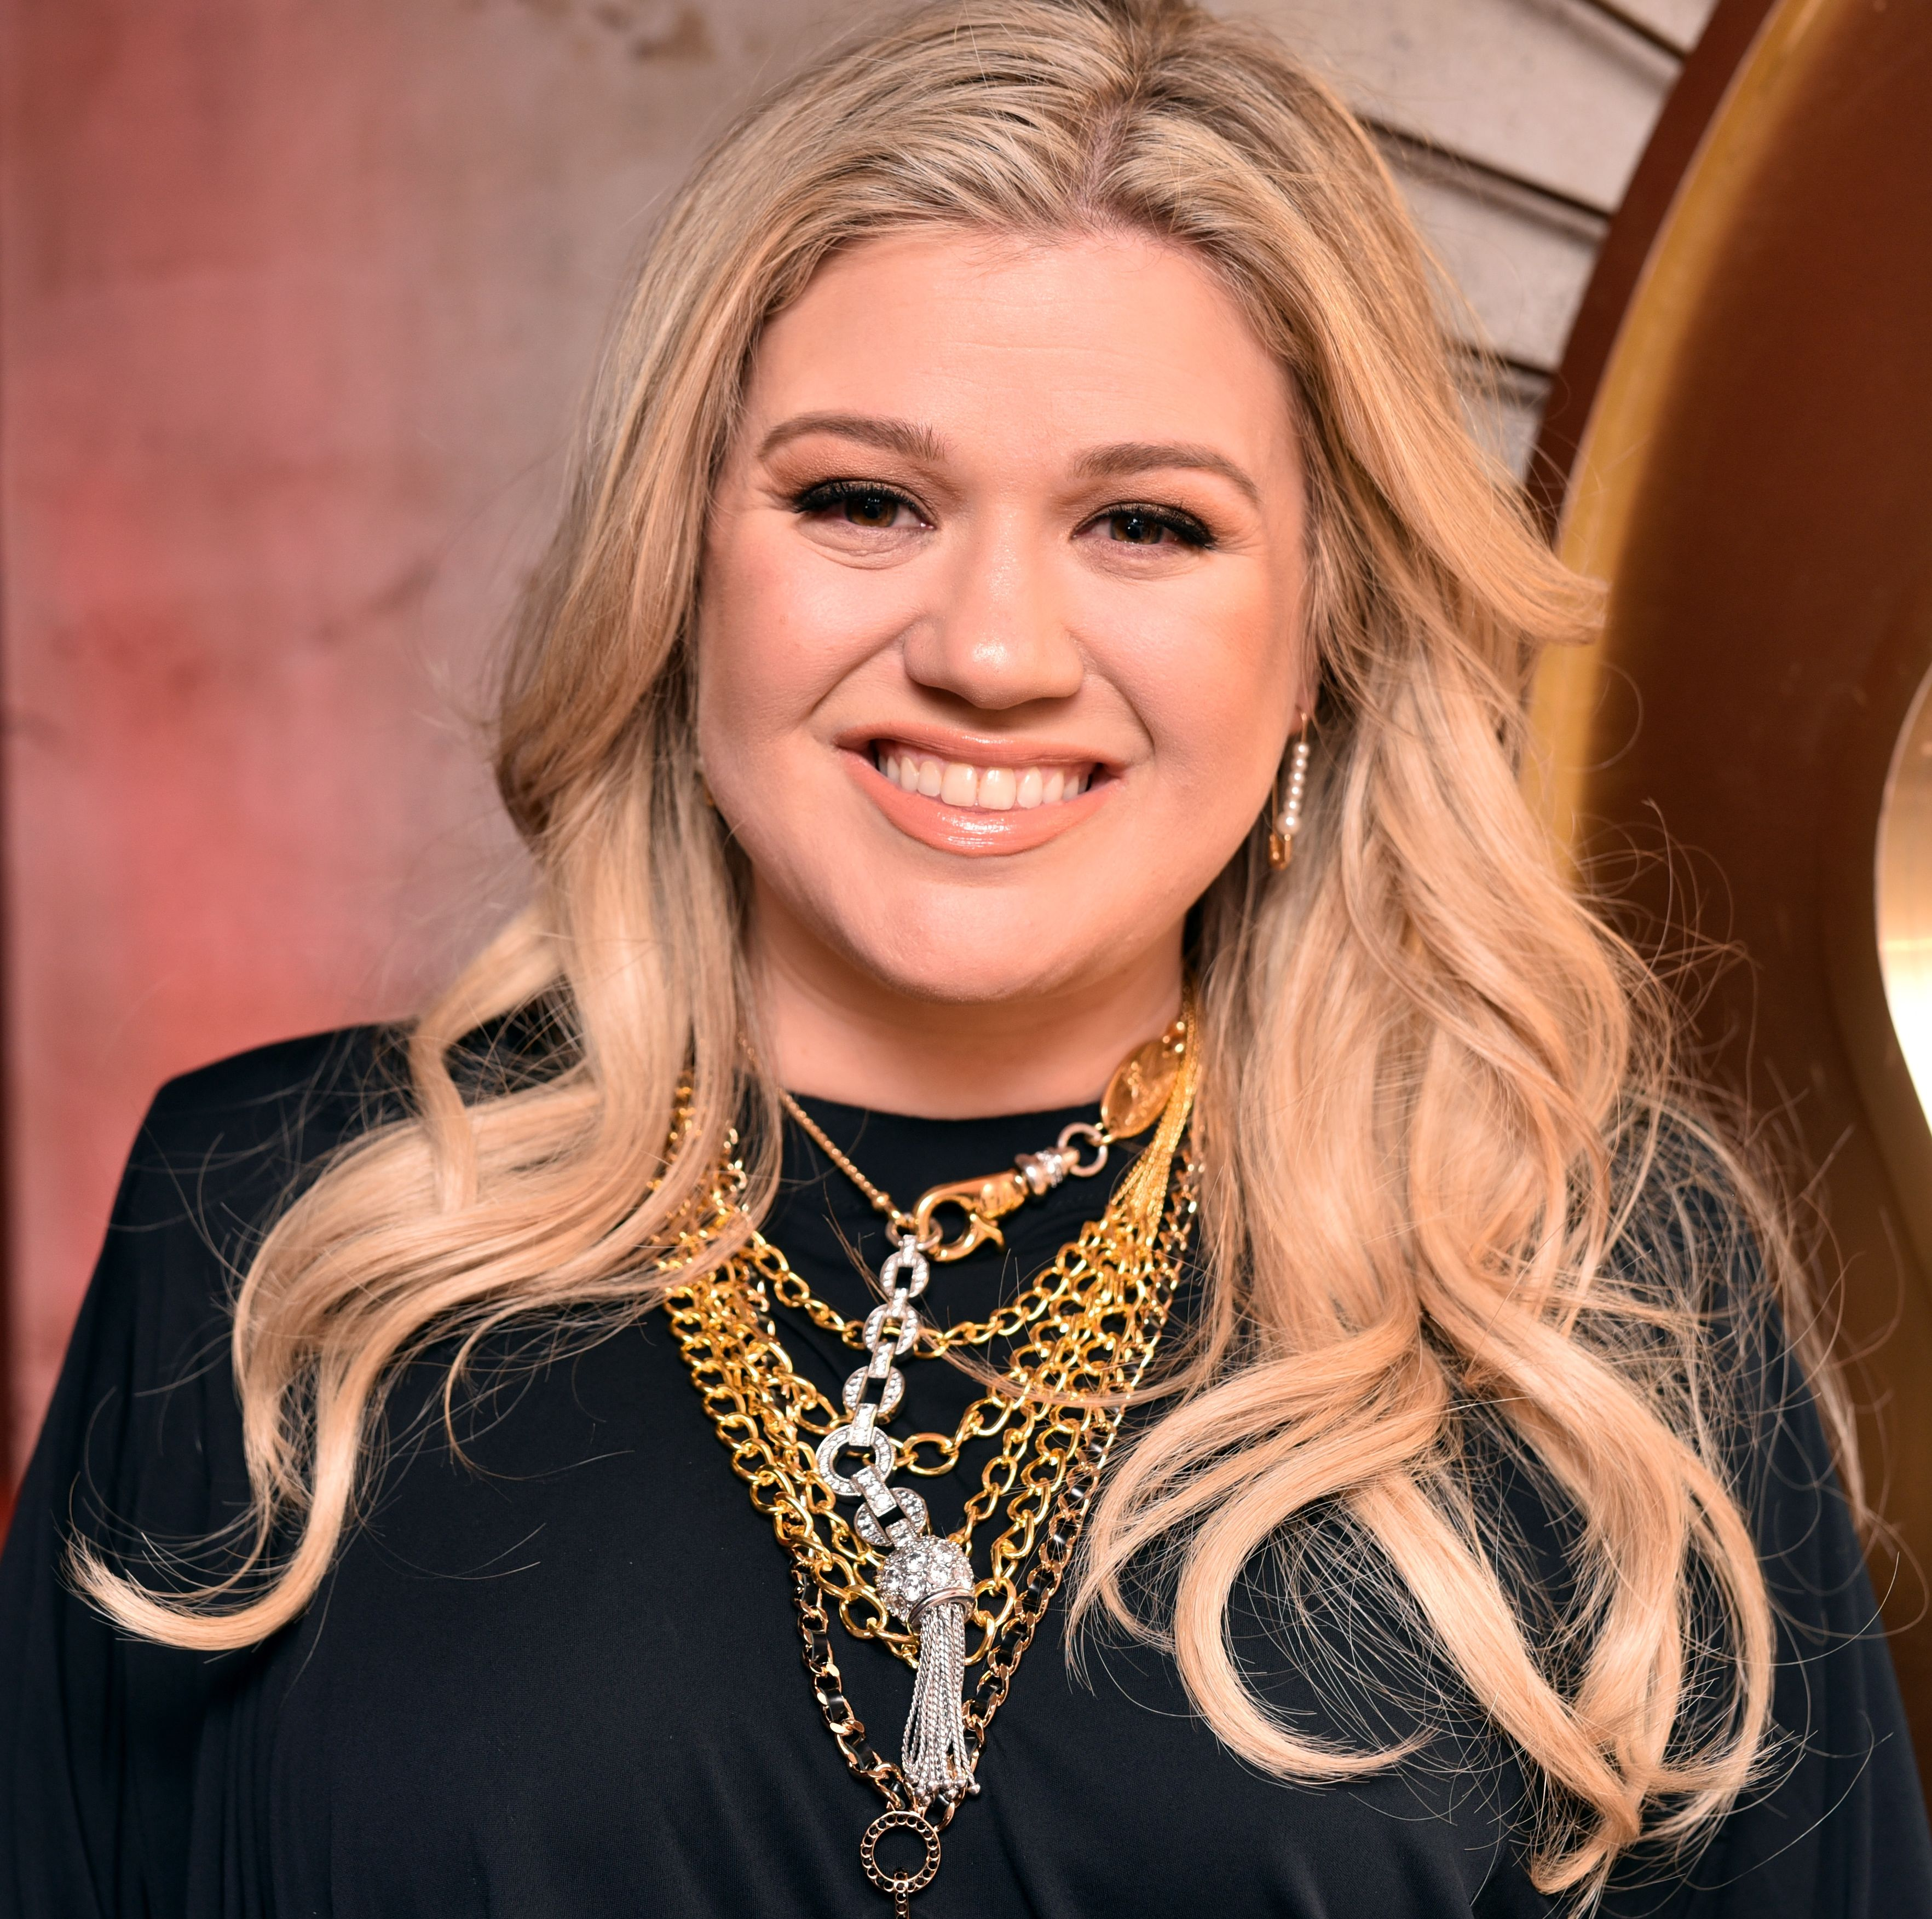 Kelly Clarkson Isn't Happy with Rumors That She's on Weight Loss Pills